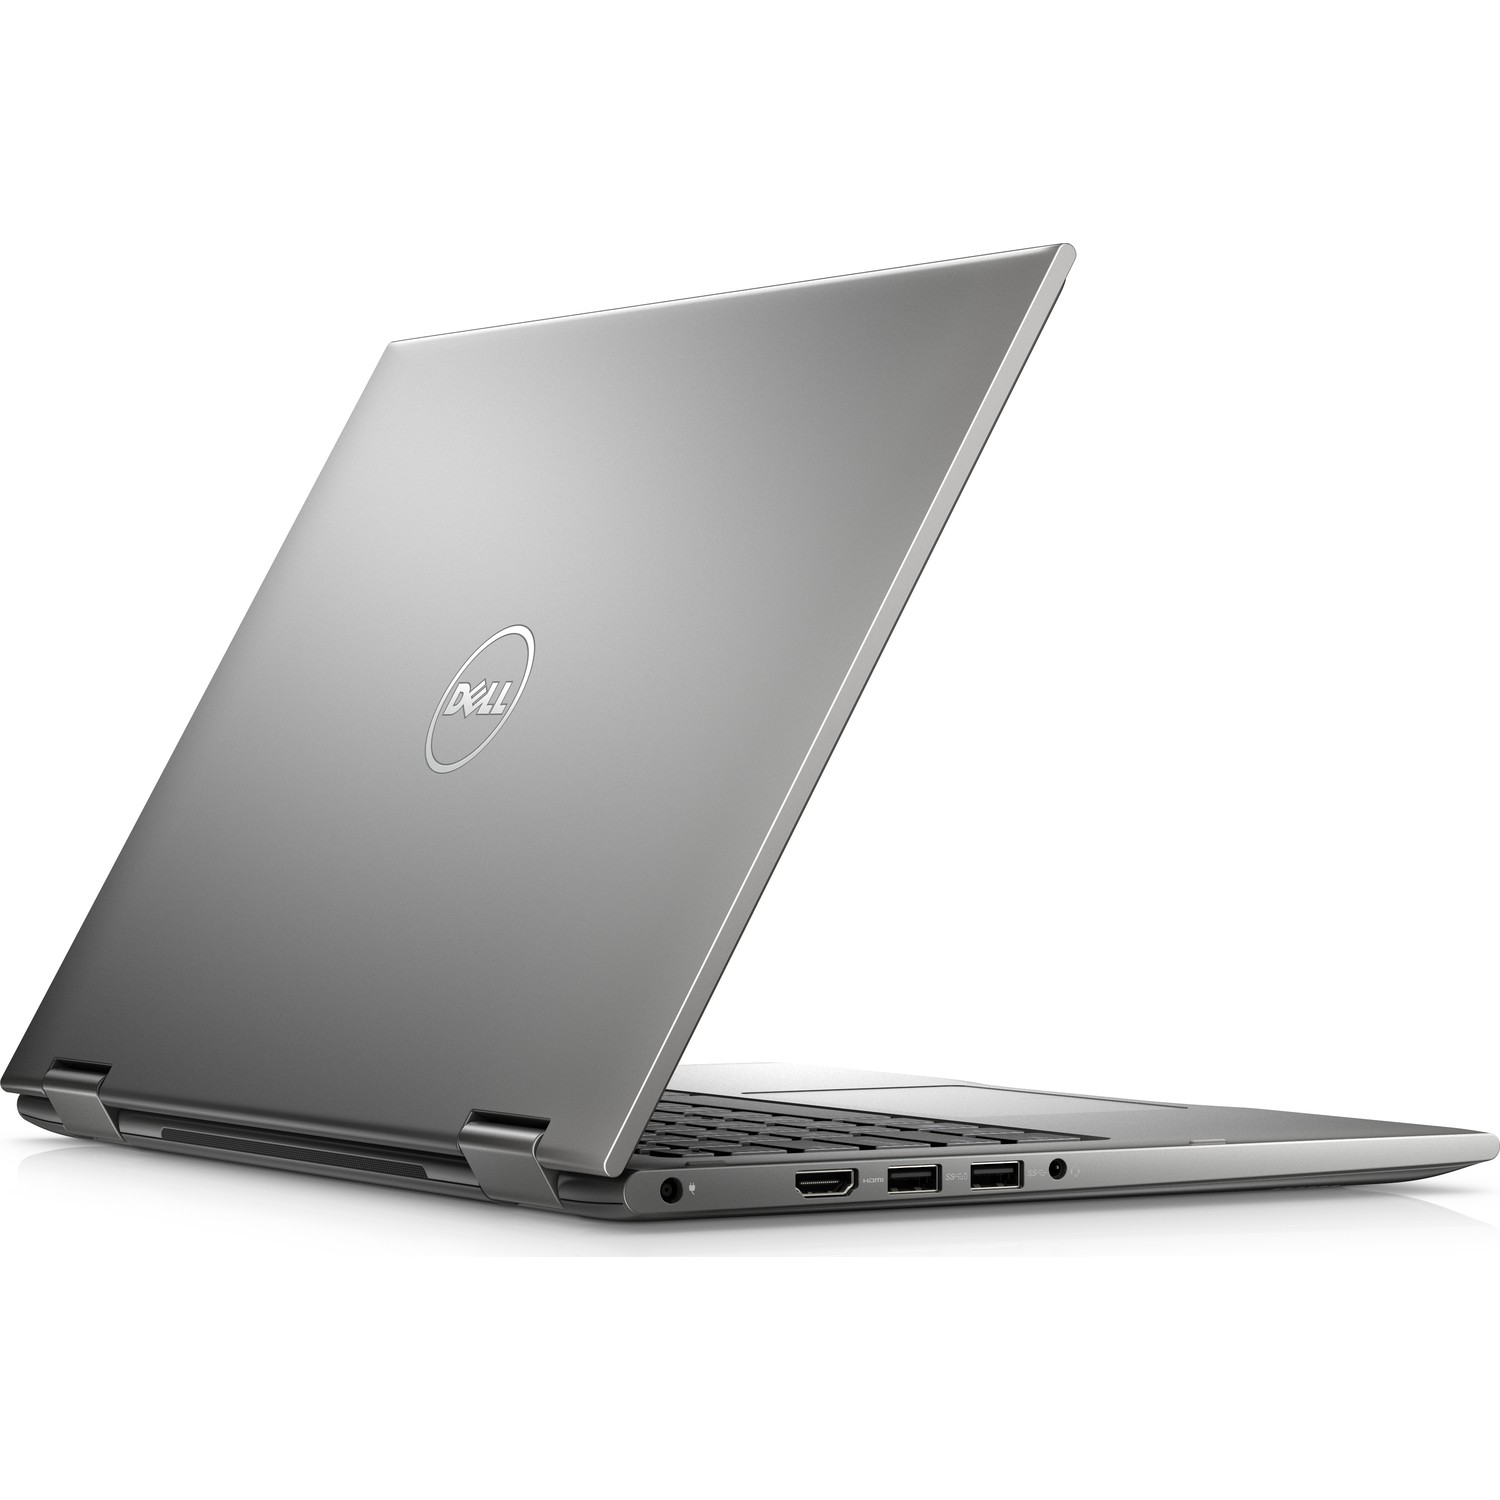 dell 3576 i5 8th generation